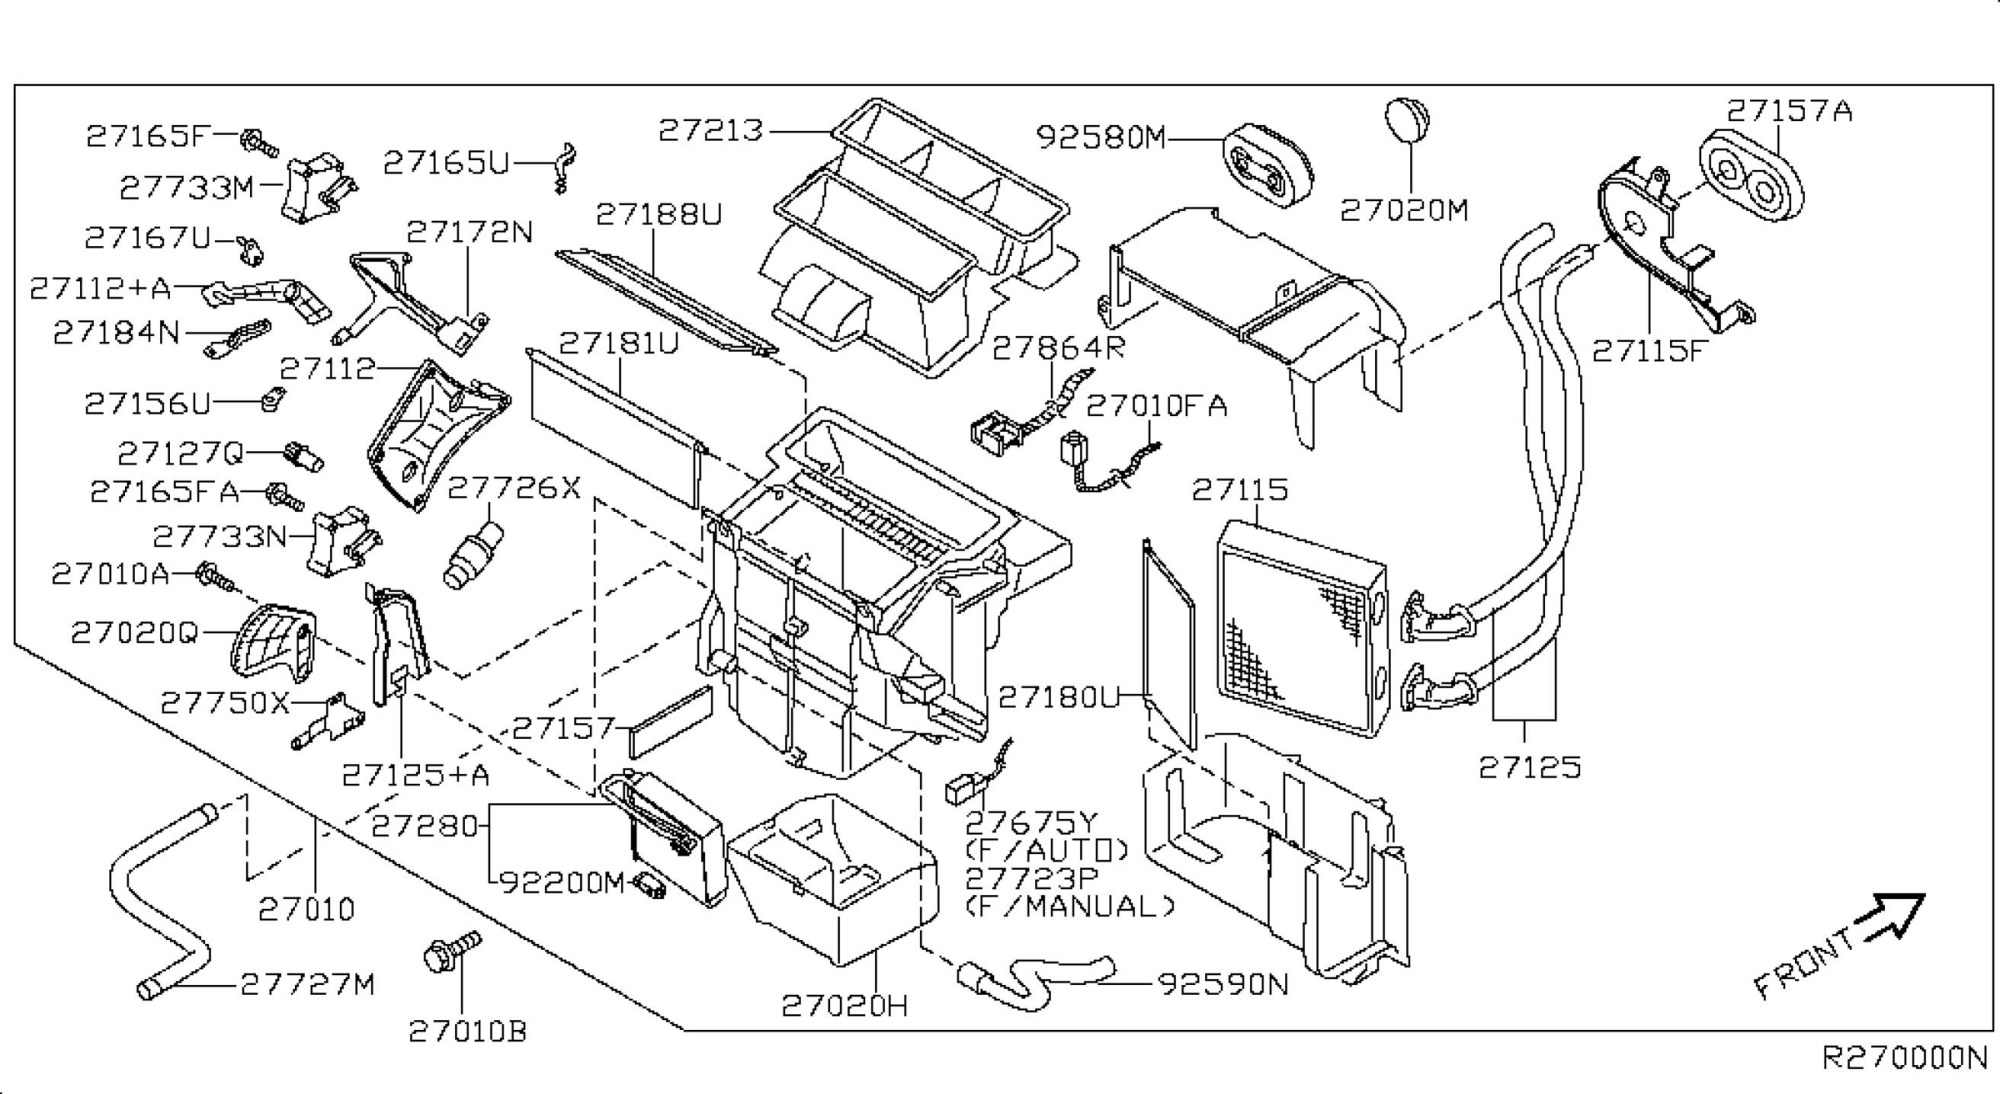 hight resolution of wrg 4671 2003 nissan murano engine diagram 2004 nissan quest engine diagram 2003 nissan altima